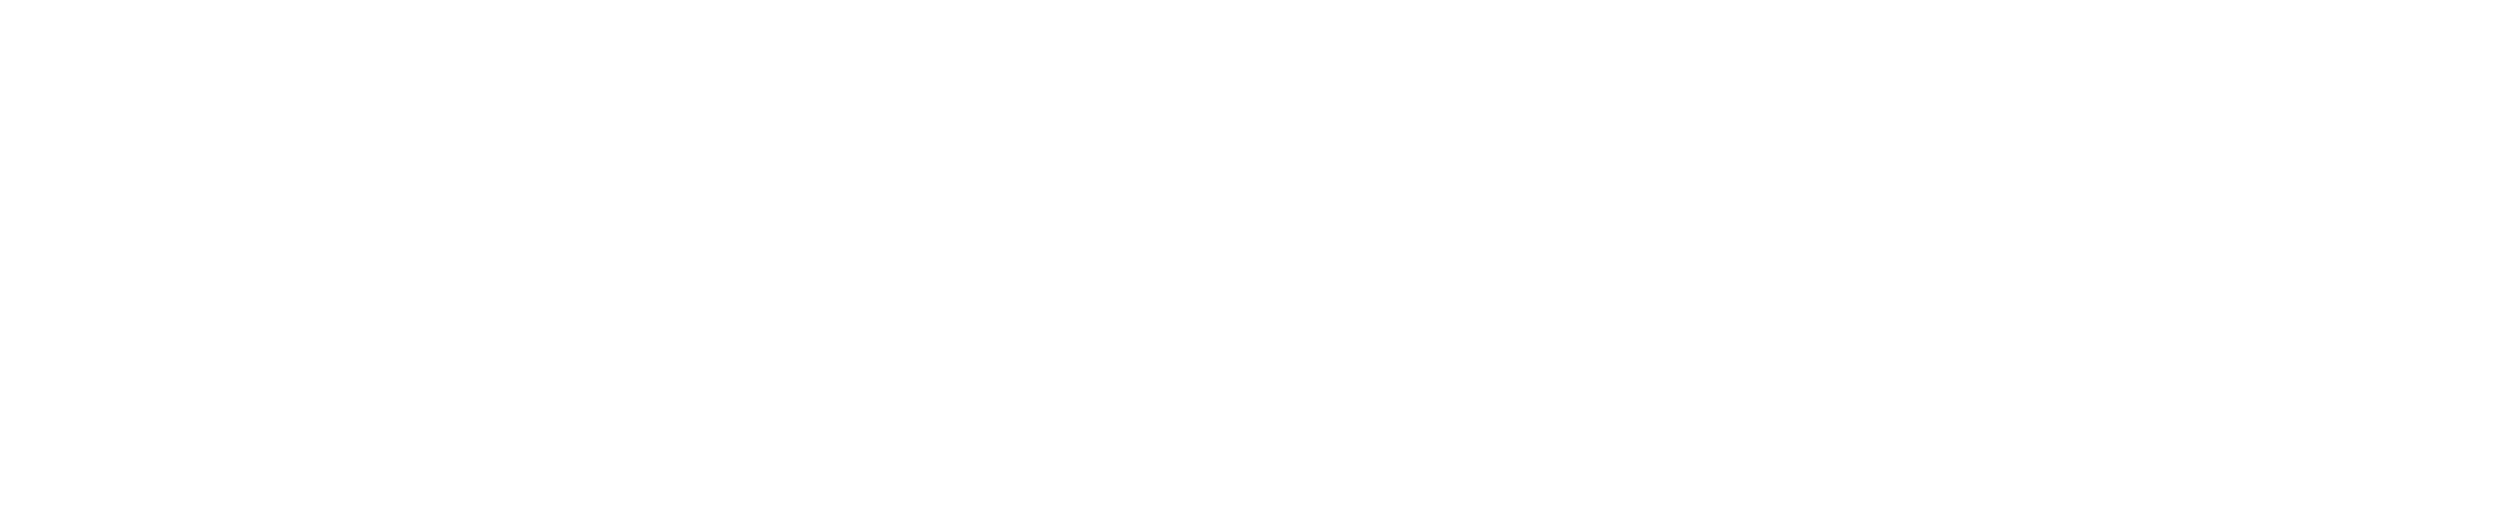 science of hype_visual-04.png